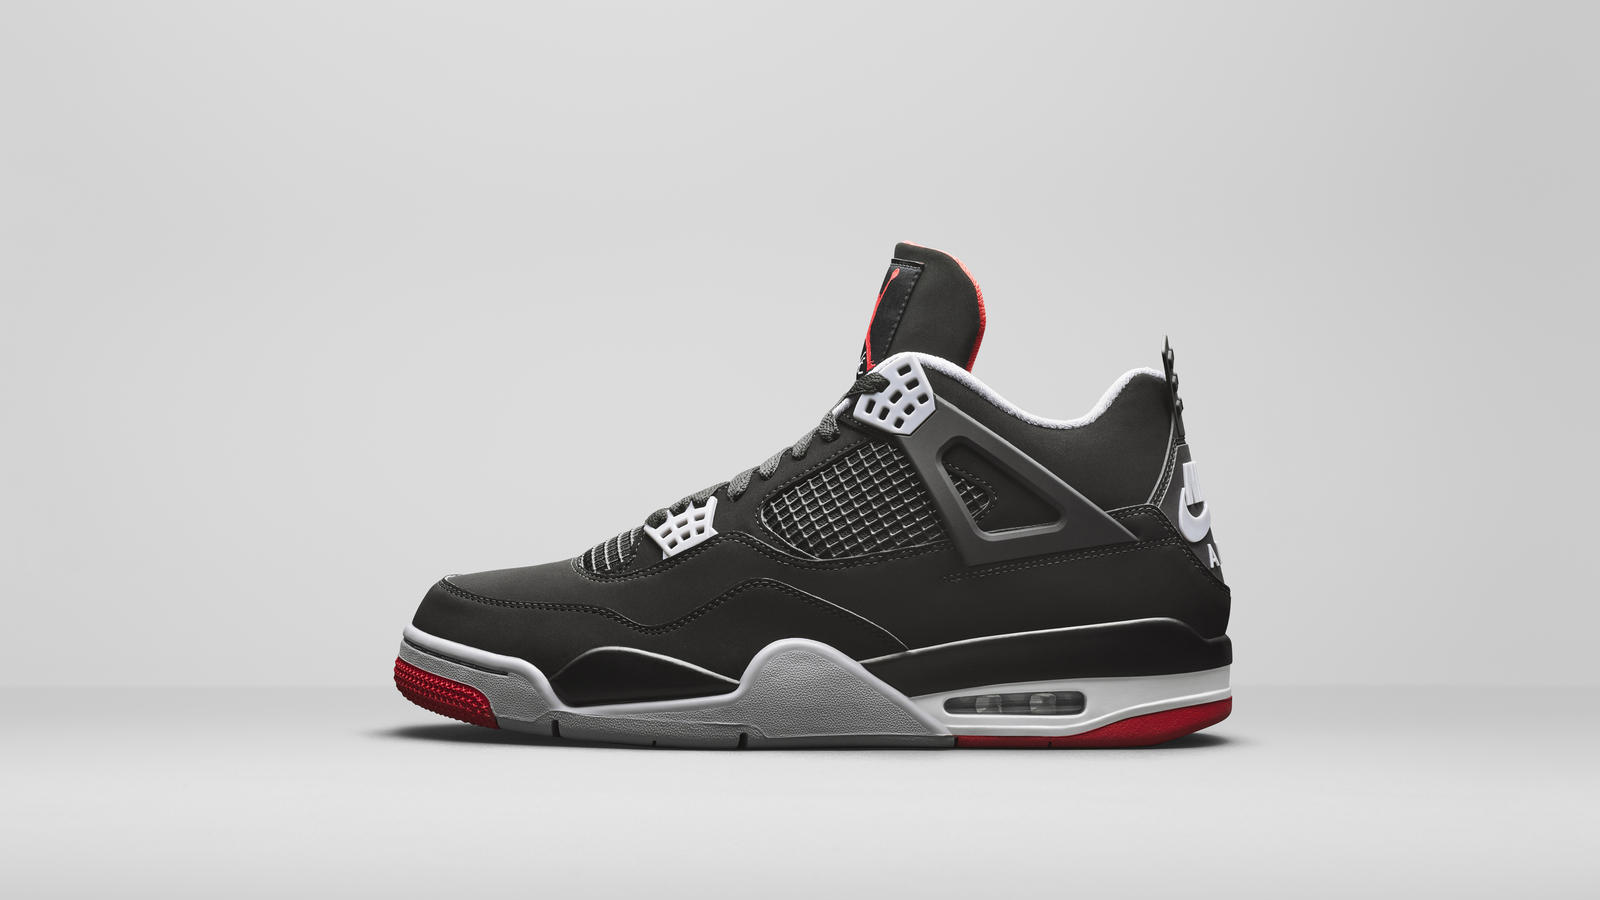 e2c61beb7978ca Air Jordan 4 Bred Official Images and Release Date - Nike News